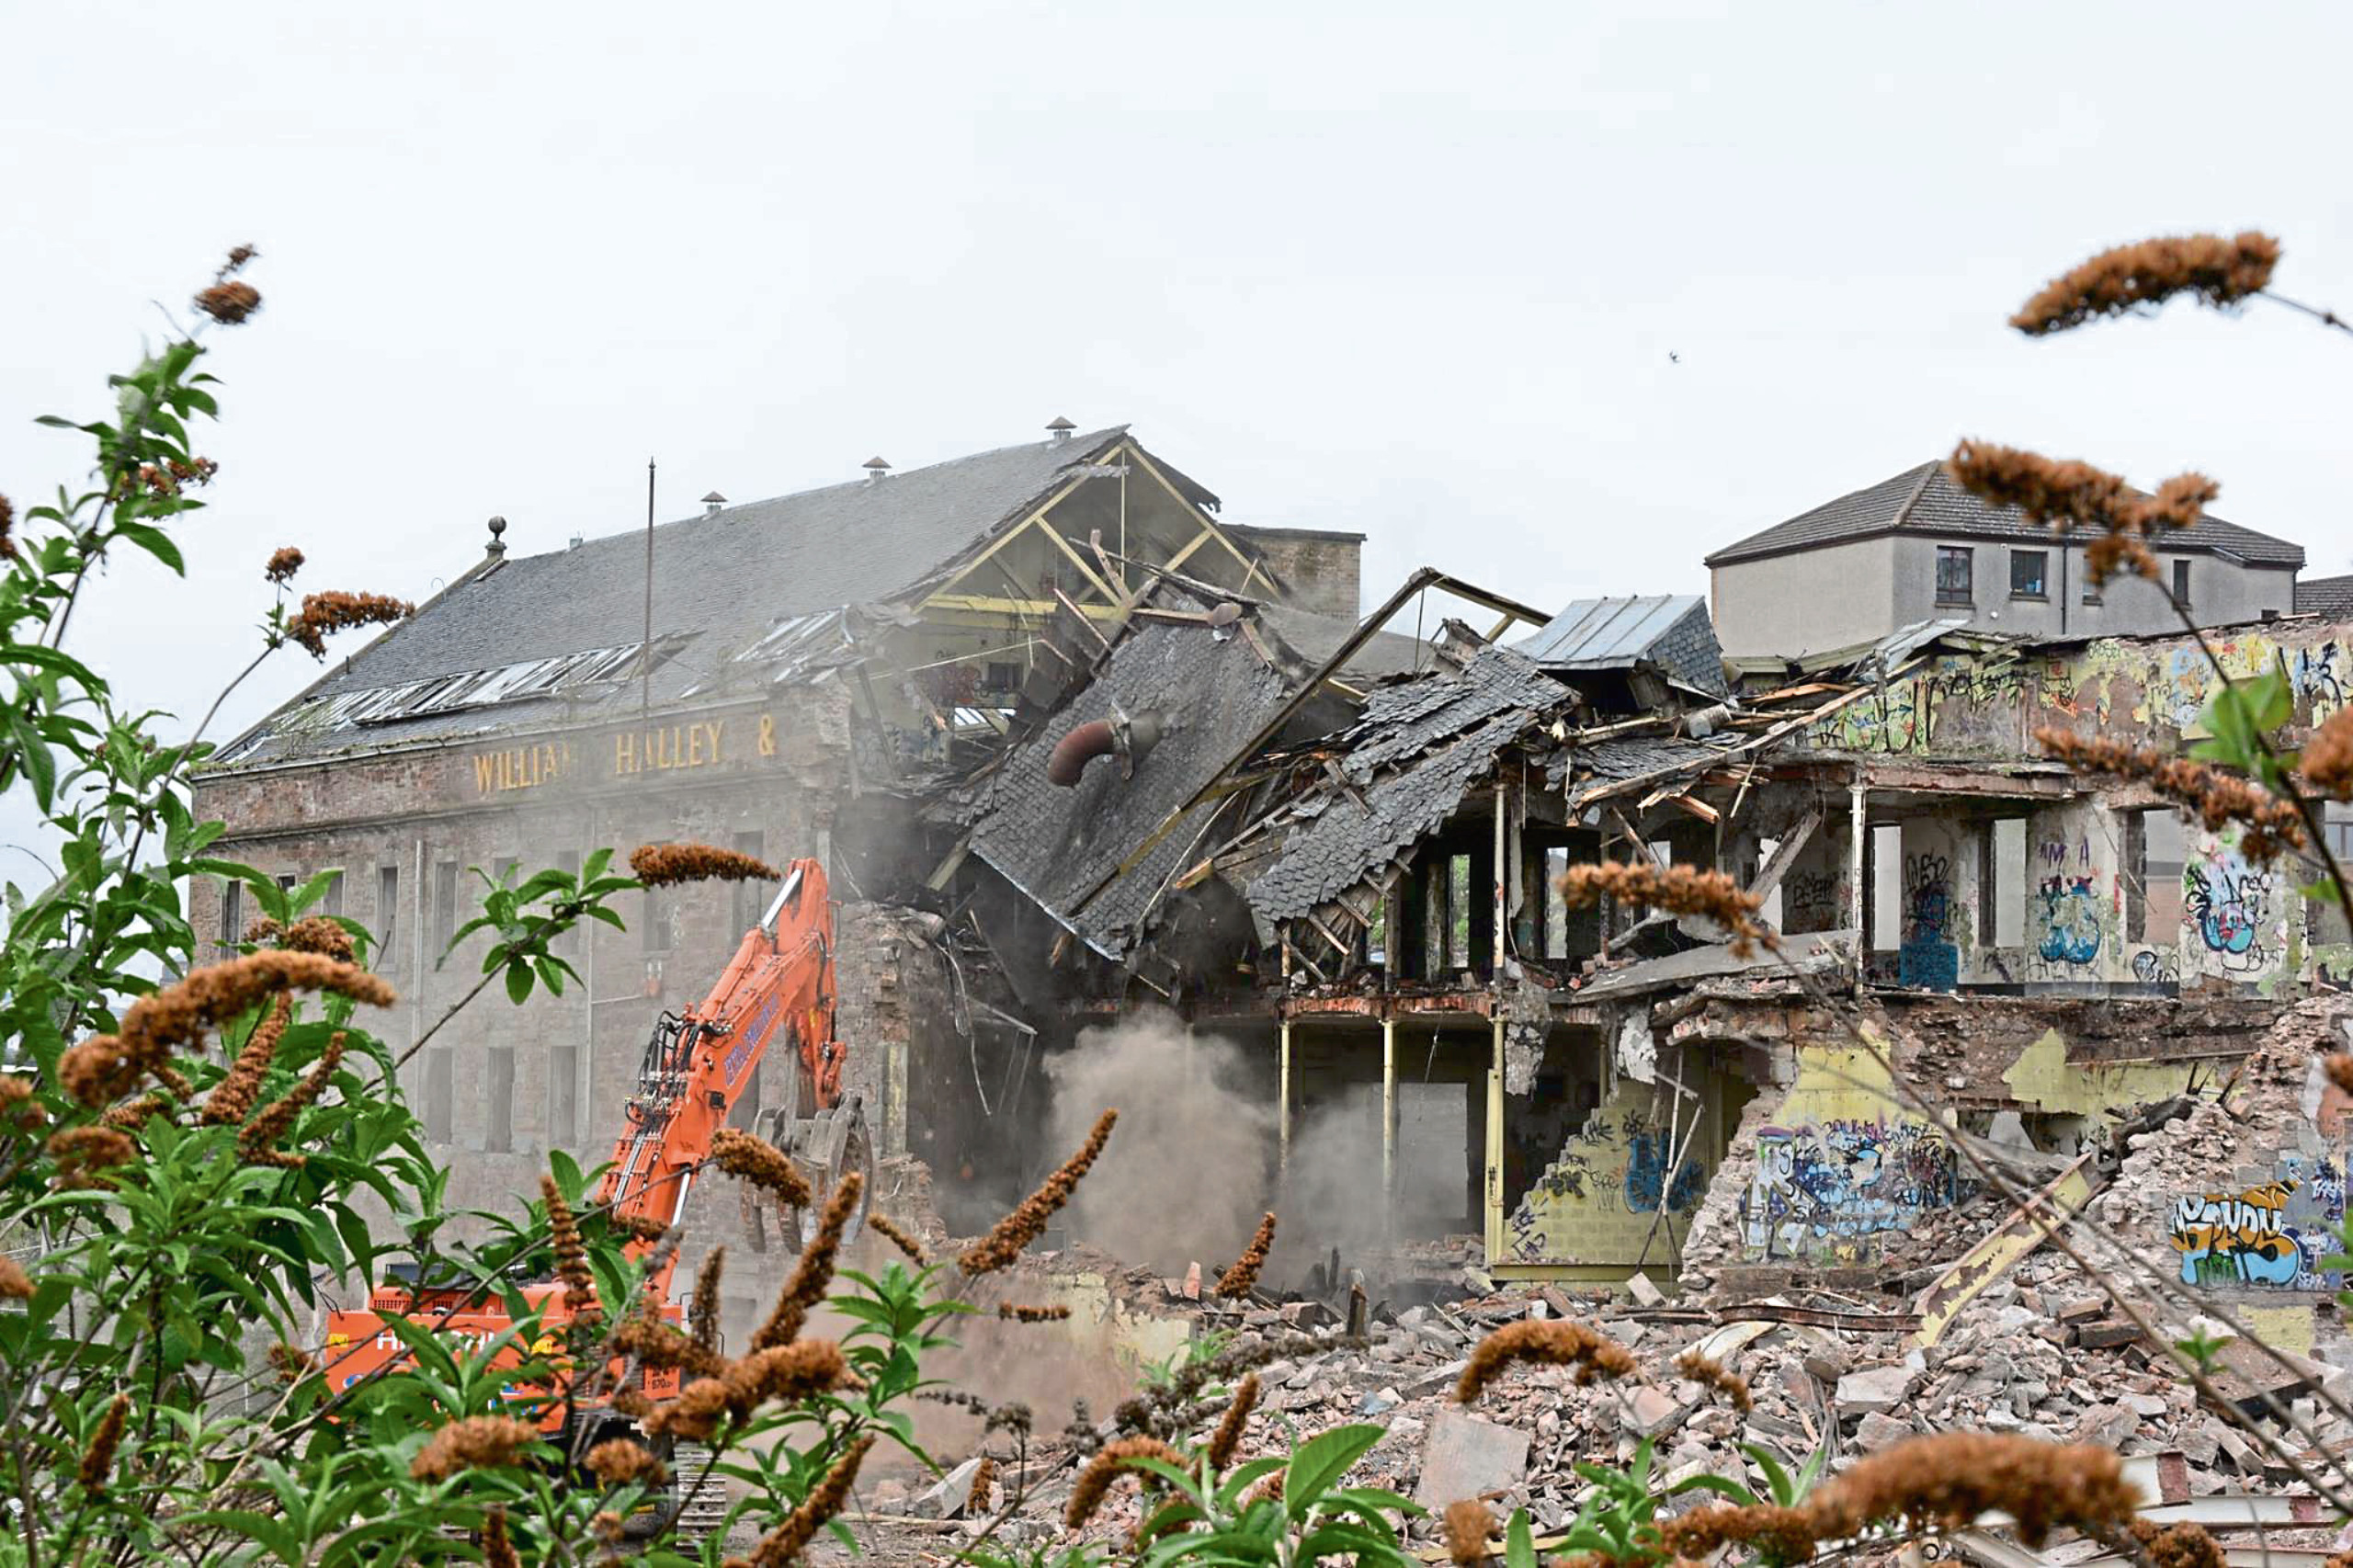 The demolition of Halley's jute mill